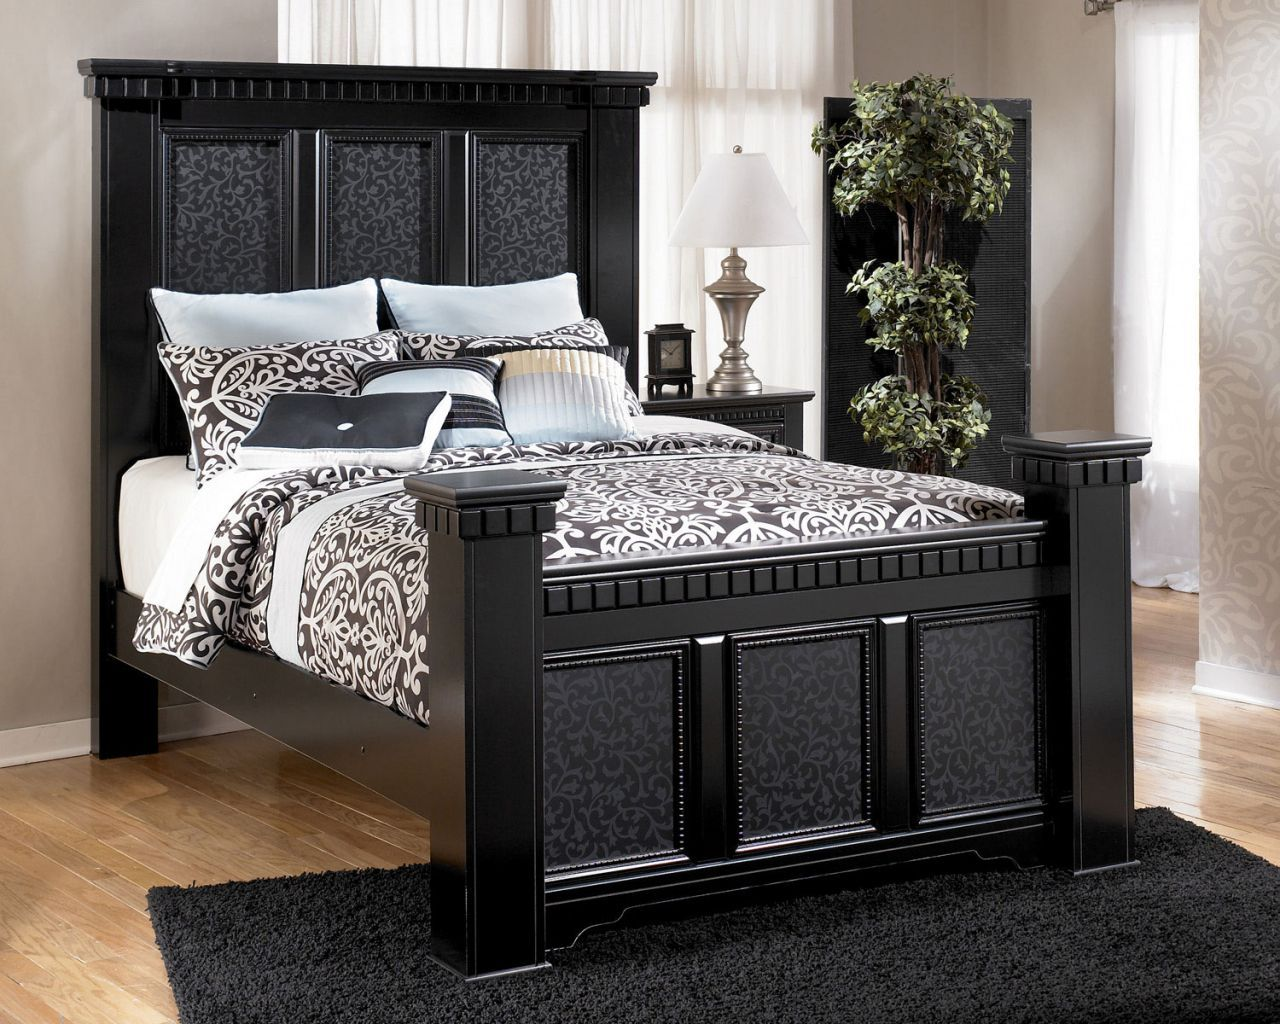 Home gallery furniture for poster beds cavallino queen new mansion